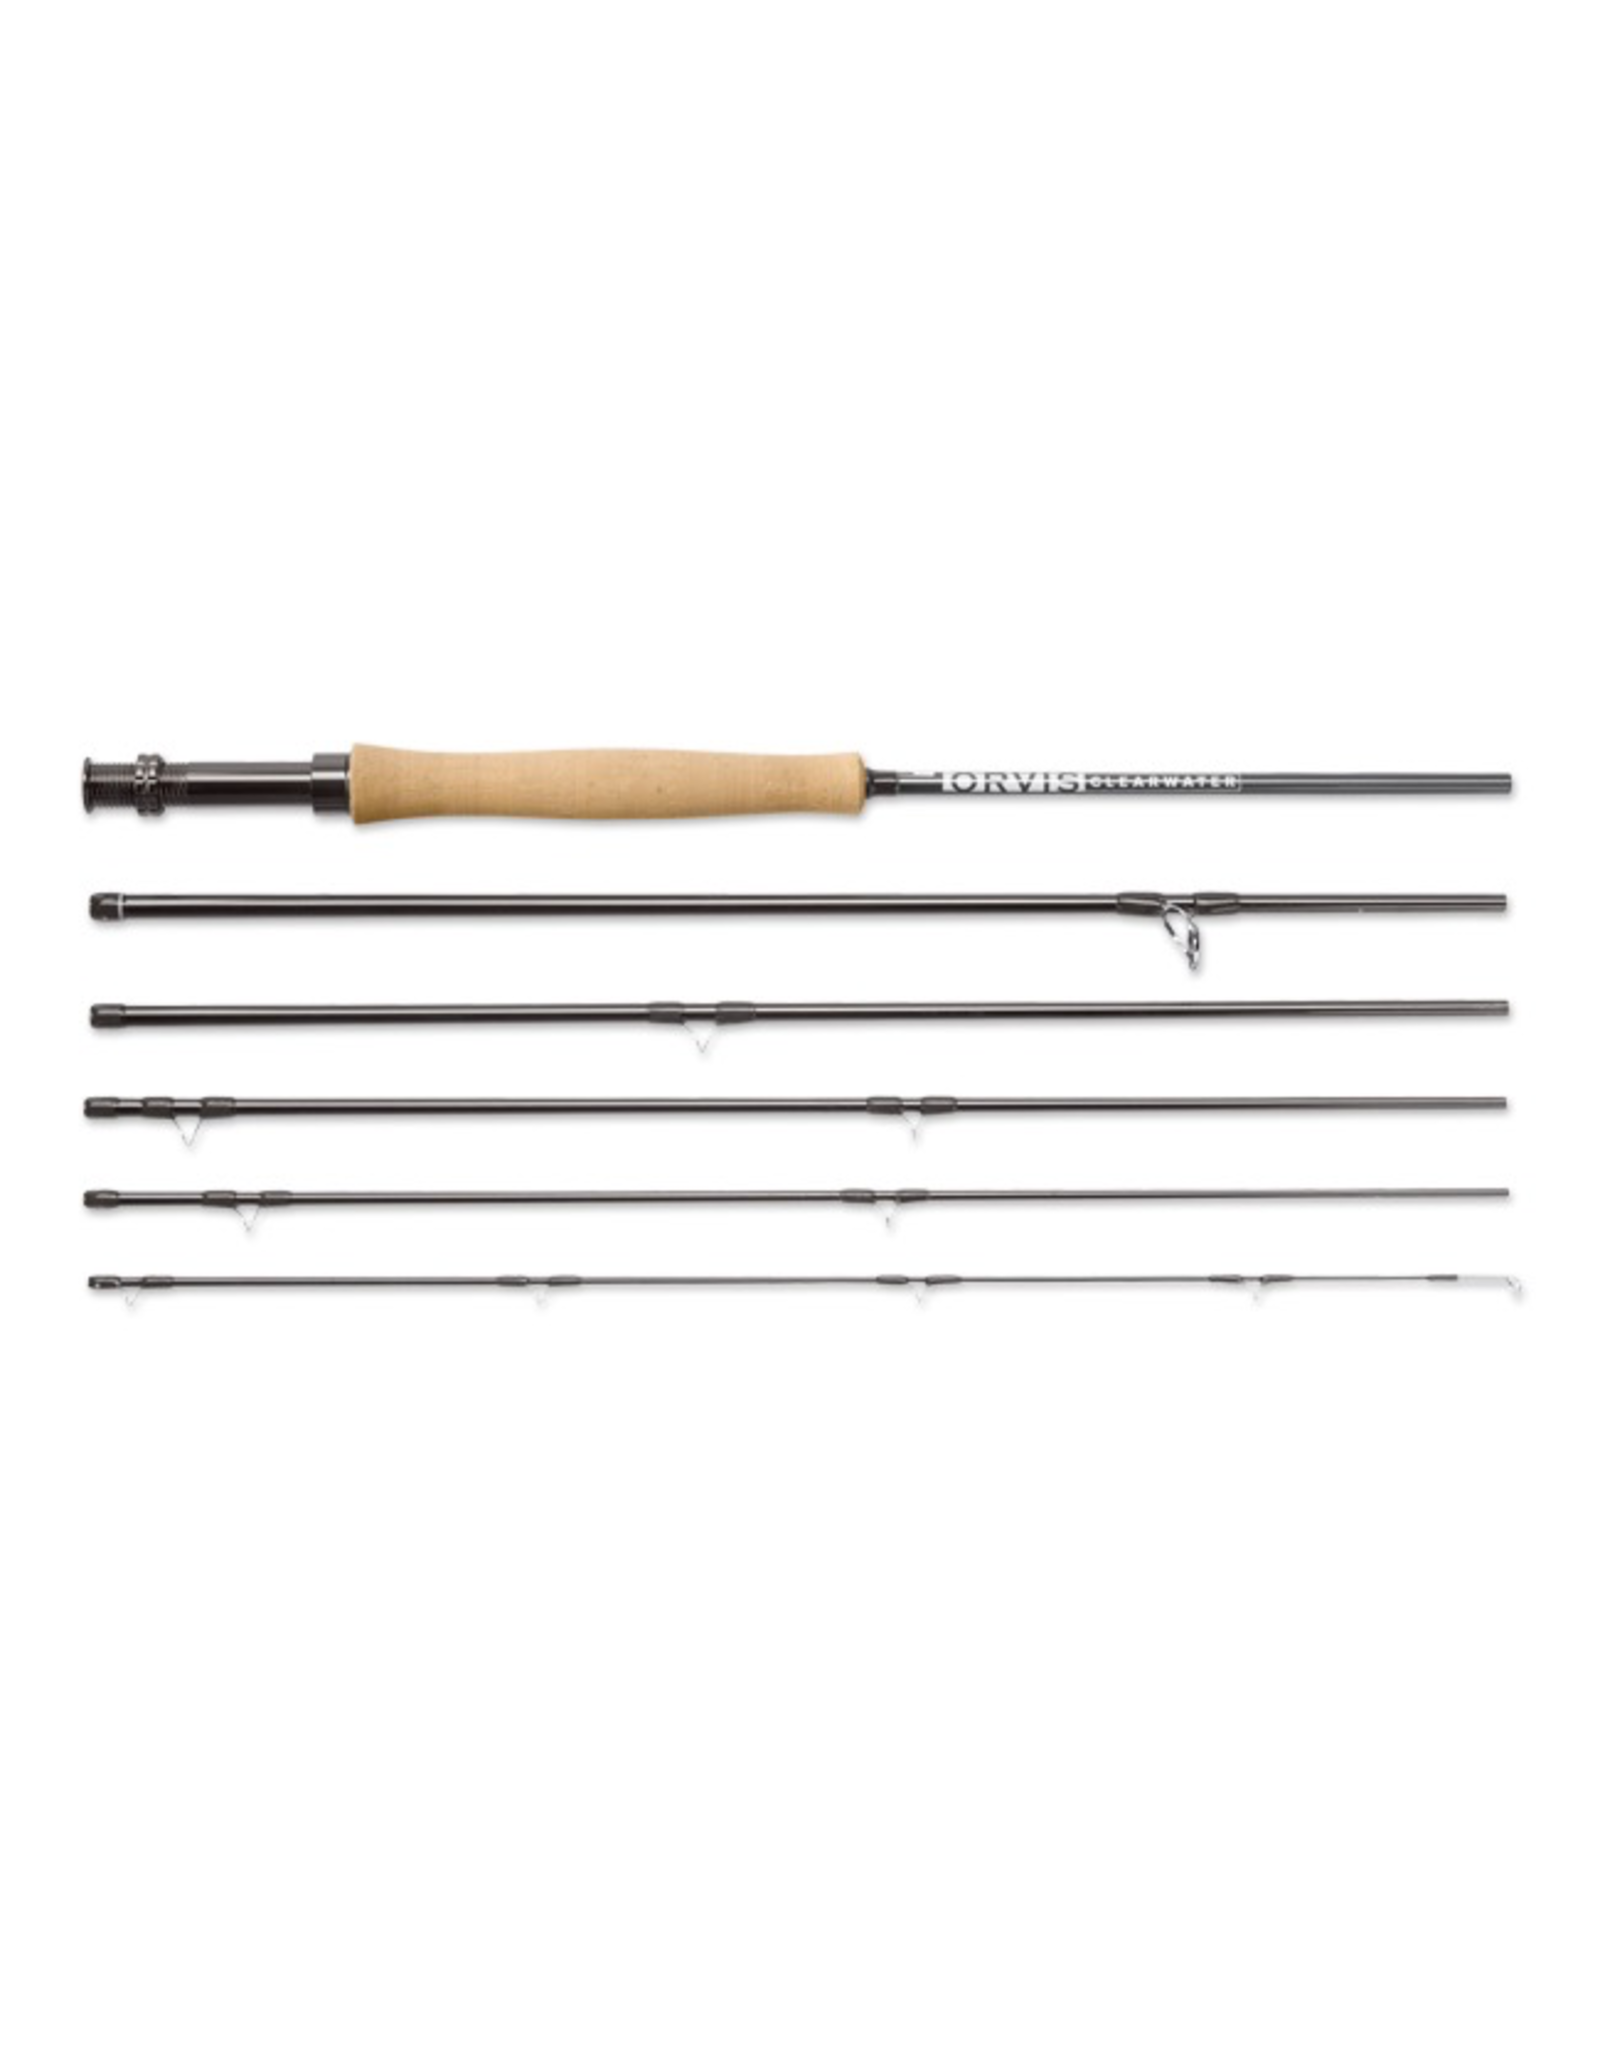 Orvis NEW Orvis Clearwater Fly Rod 9' 6wt (6pc)